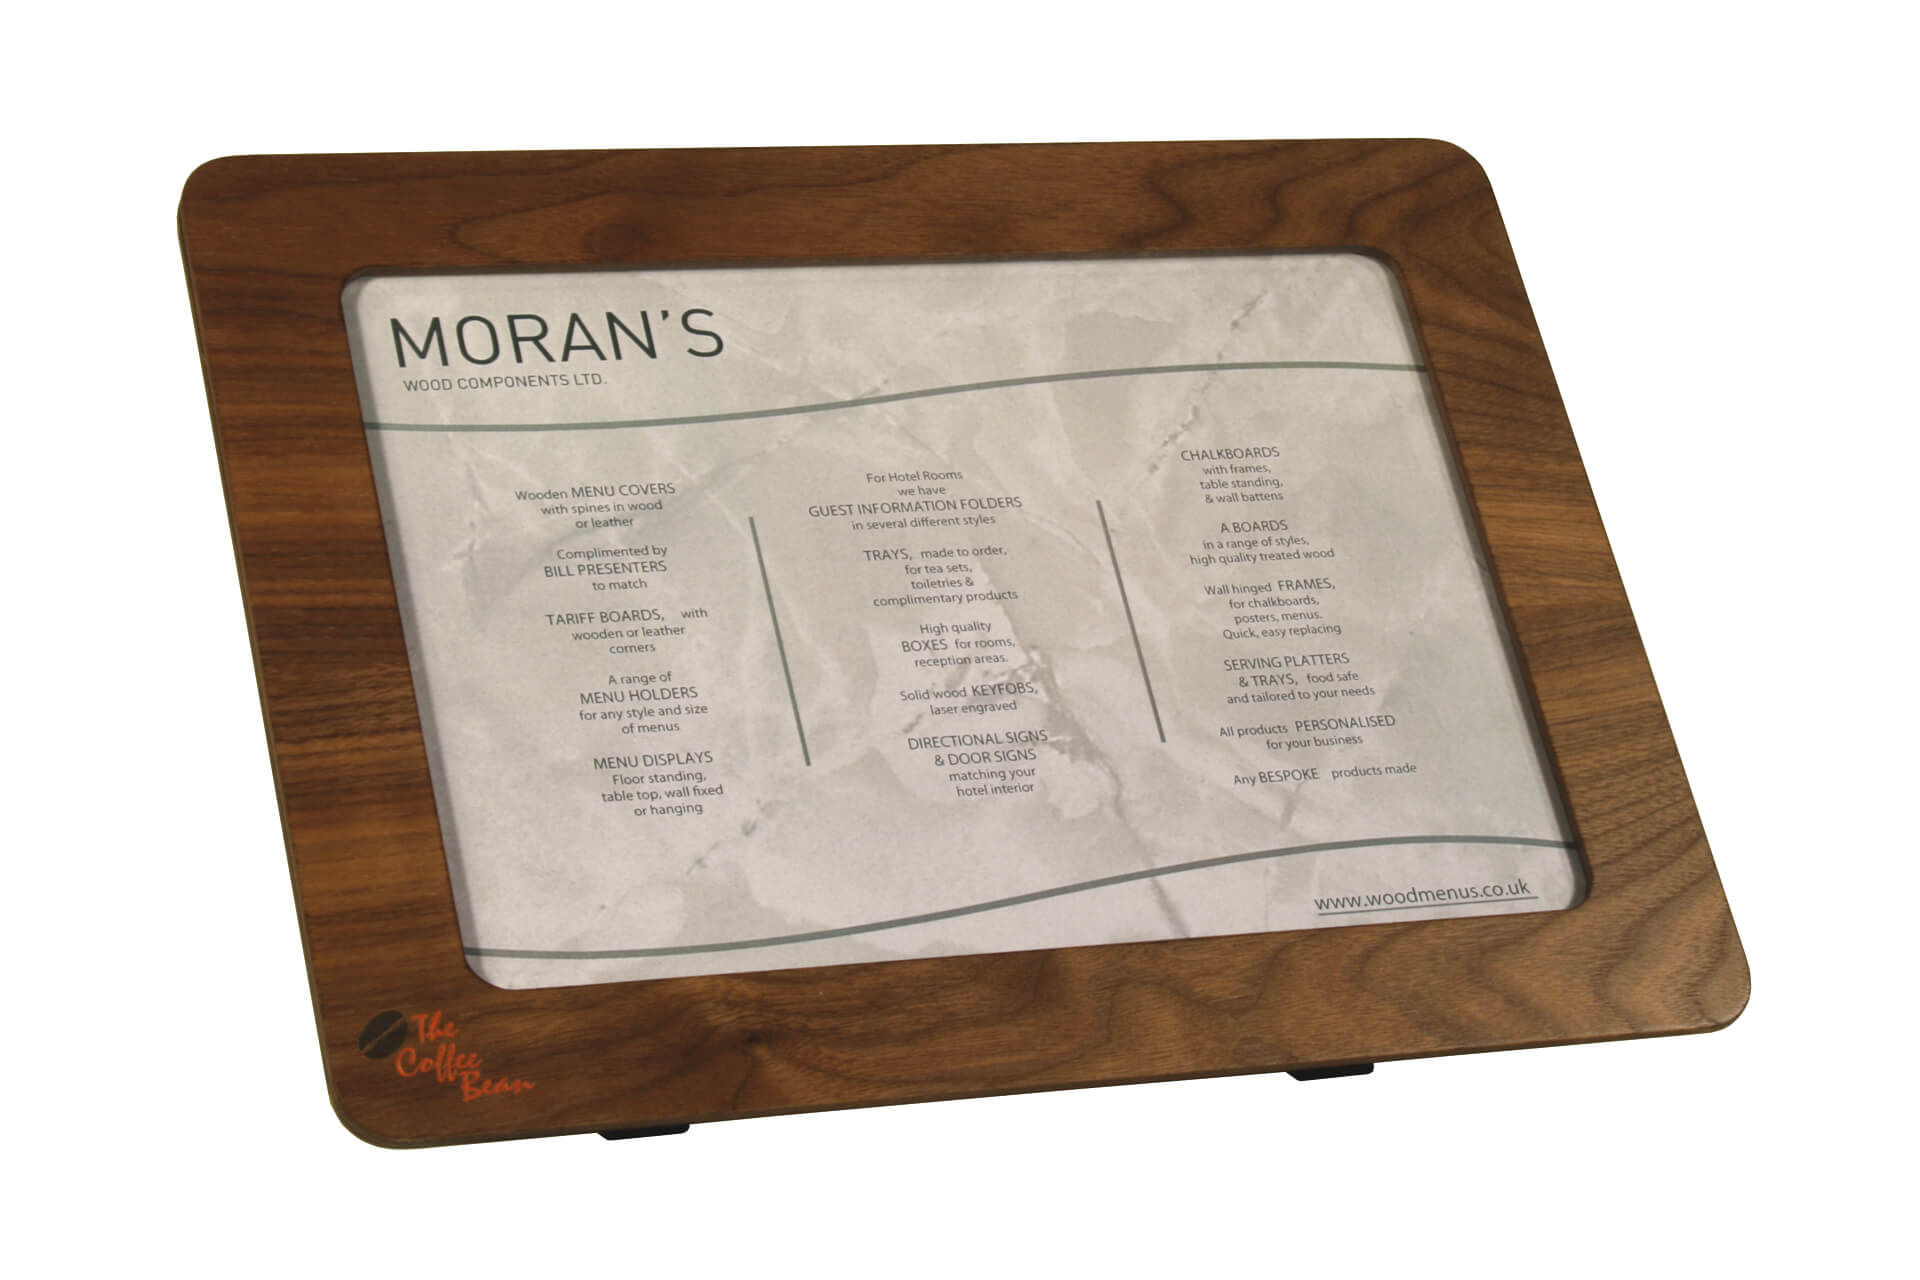 free standing poster display in bespoke wooden frame for point of sale and signage